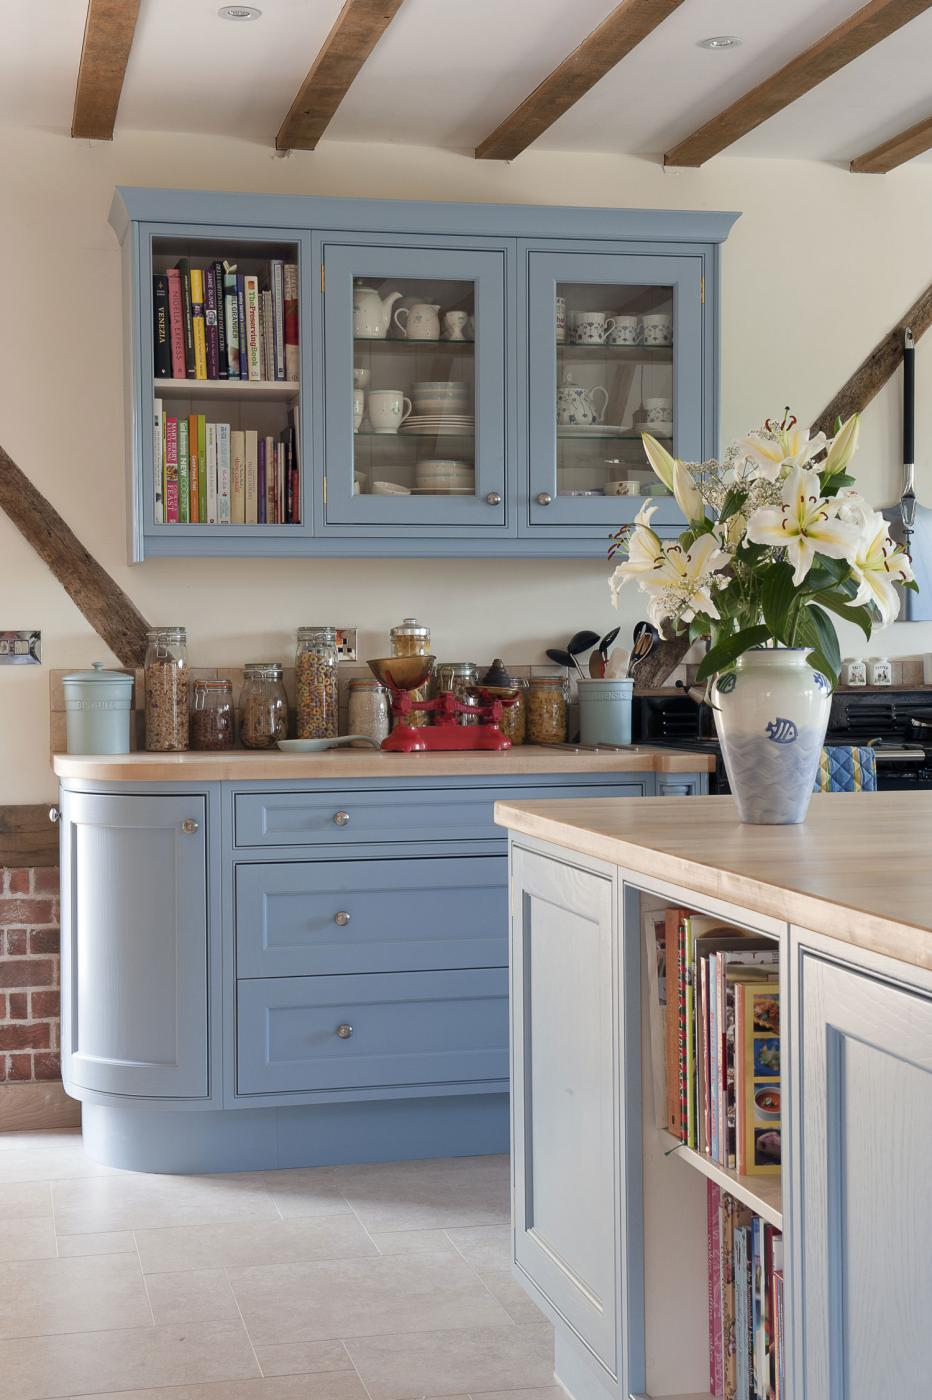 country-kitchen-shaker-cabinet-ceiling-beams-jm-interiors